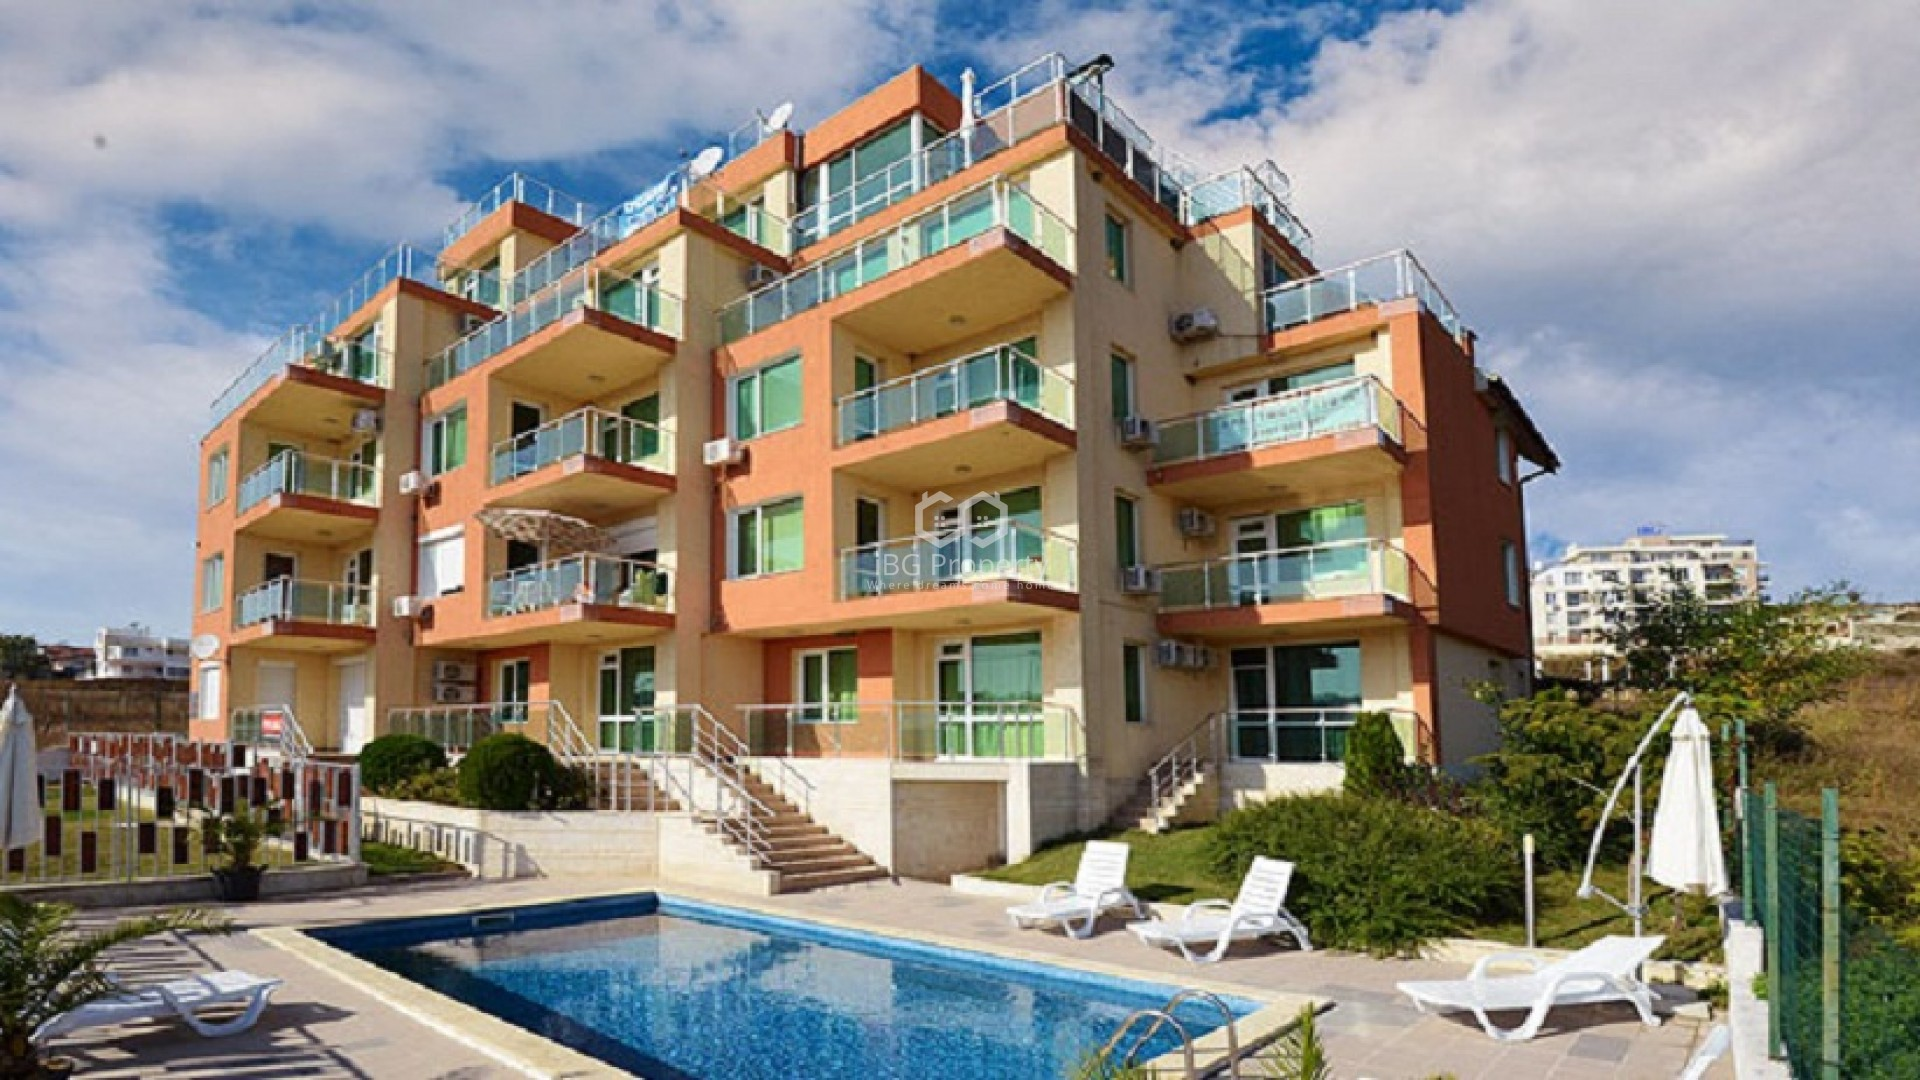 EXCLUSIVE OFFER! Two bedroom apartment Byala 104 m2